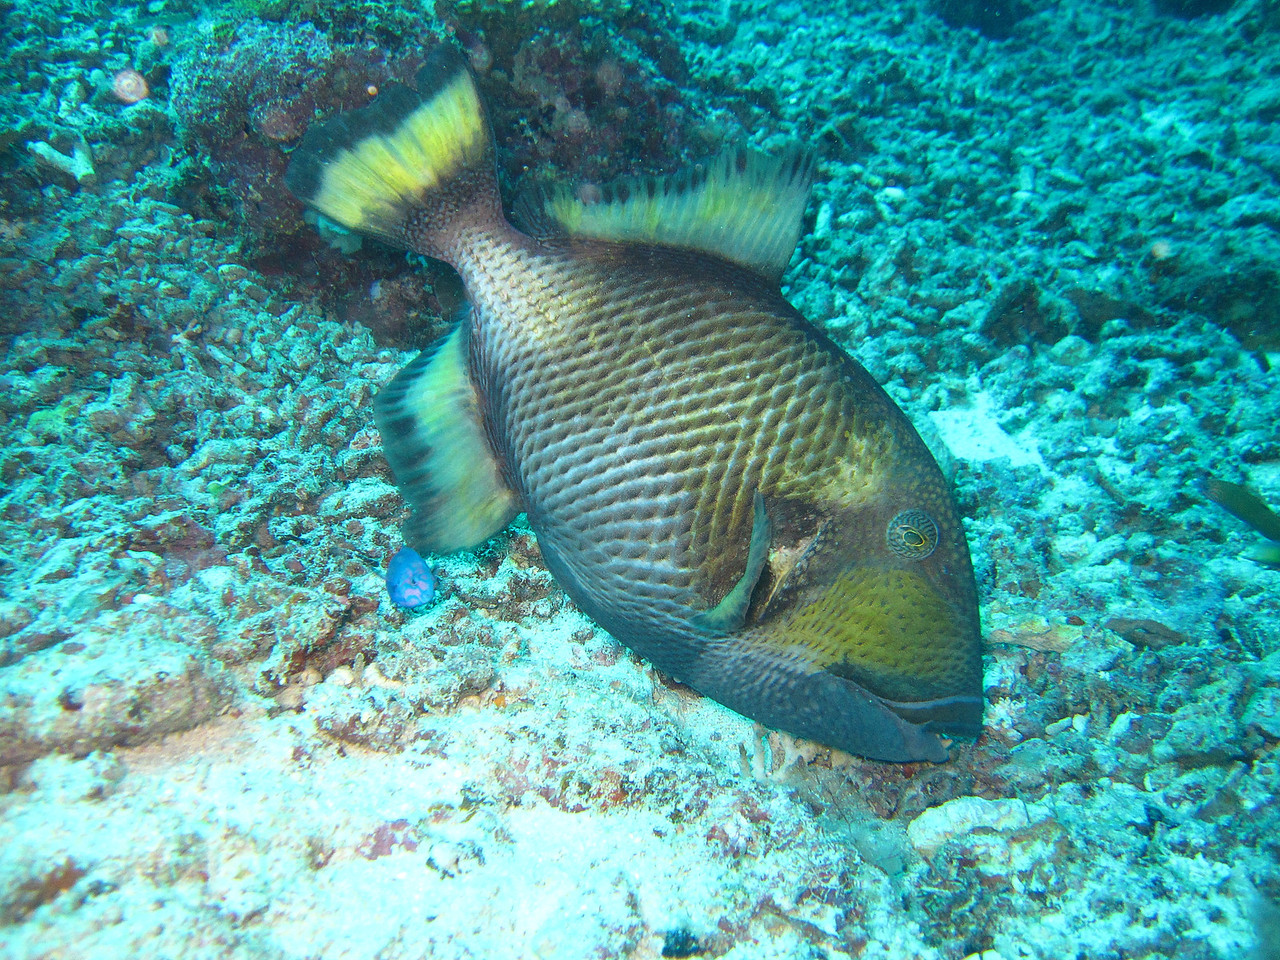 There were a lot of Titan Triggerfish around, but they were in a very docile mood.